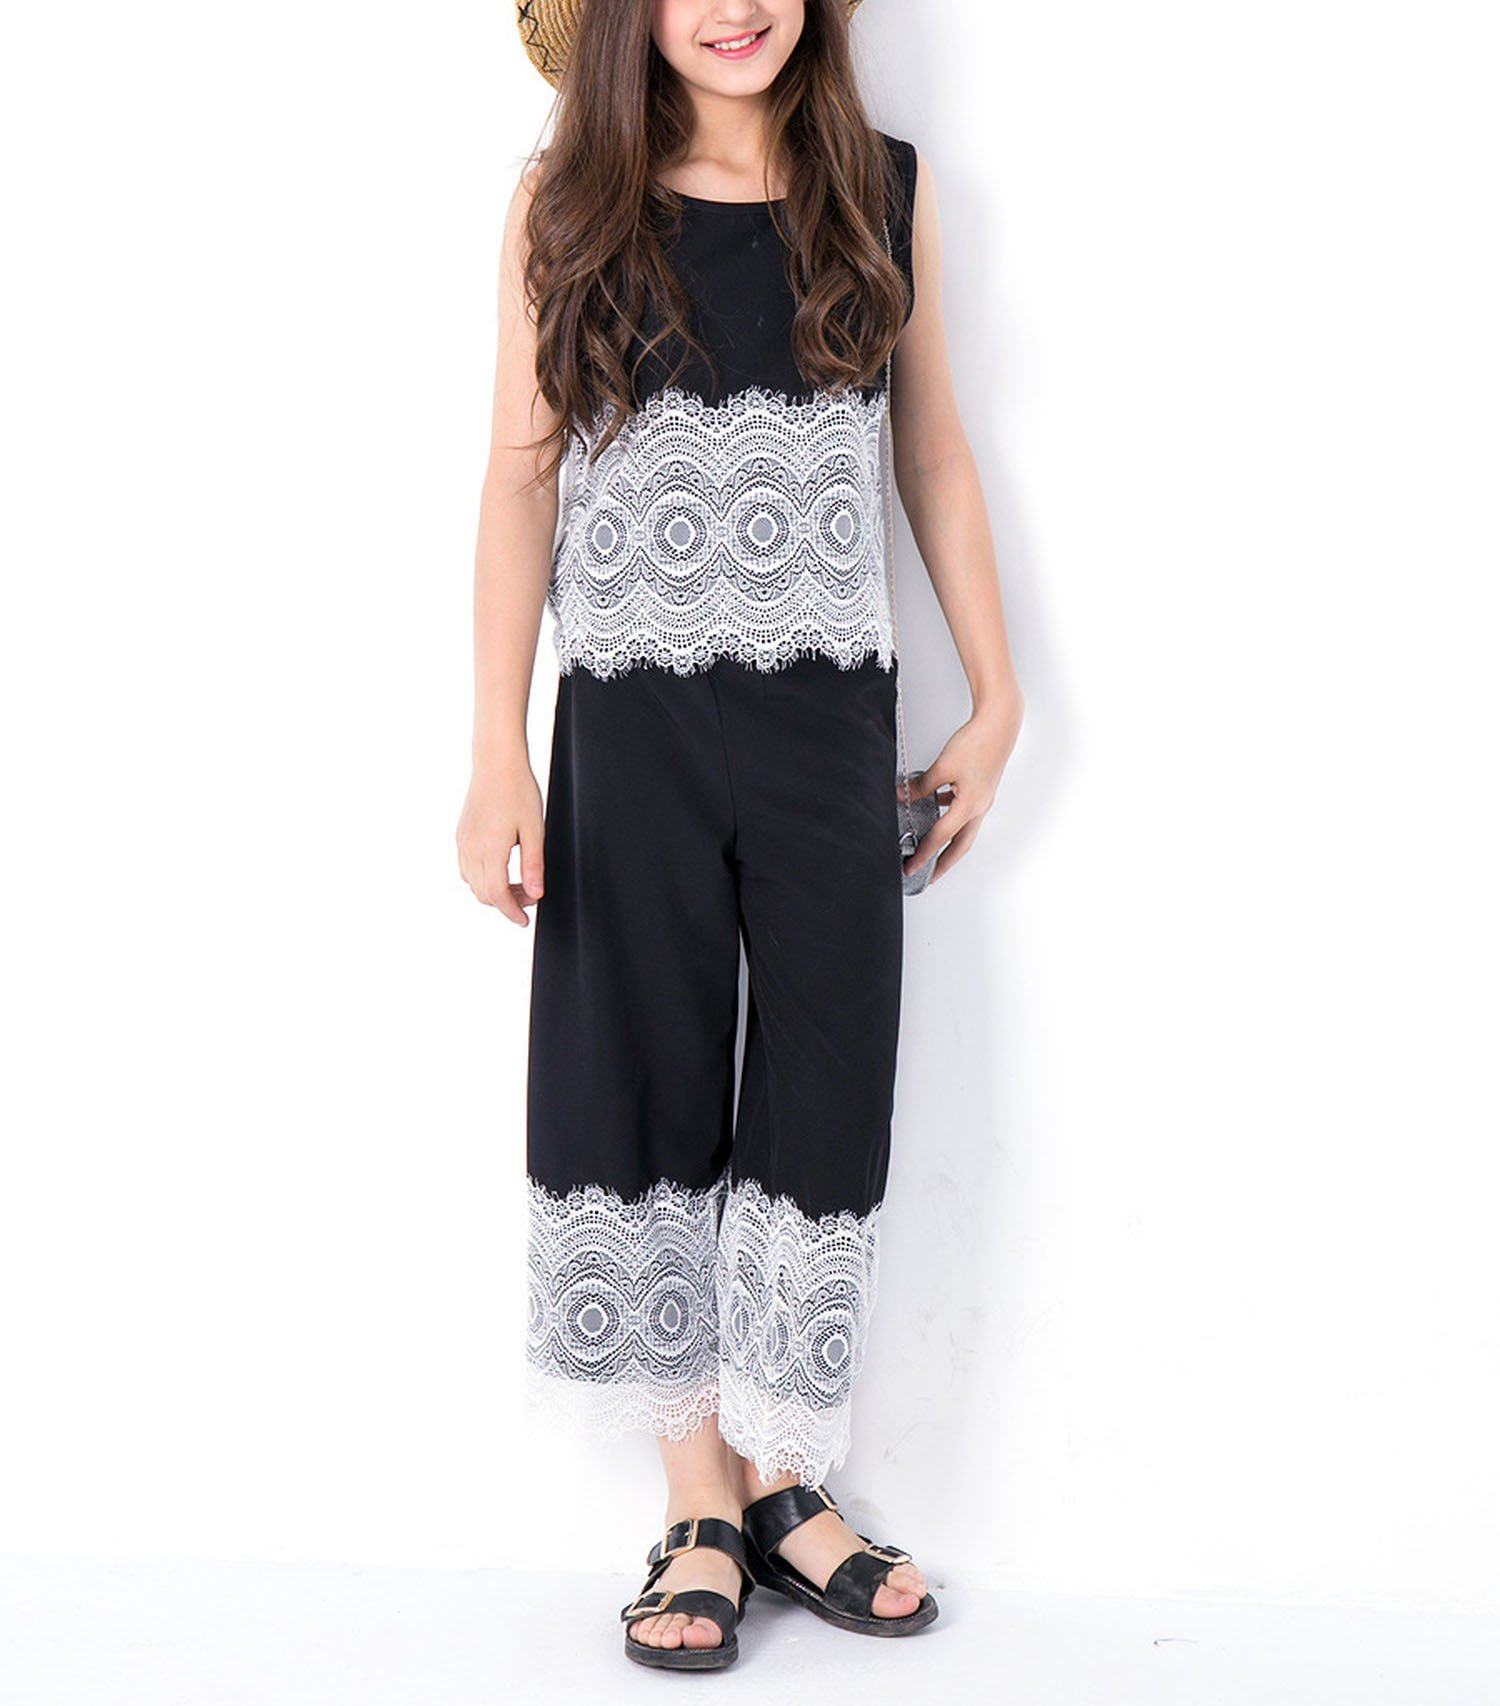 Zcaosma Girls Sets Cotton Lace Two-Piece Tops Pants Teenage Girls Clothing,Black,12